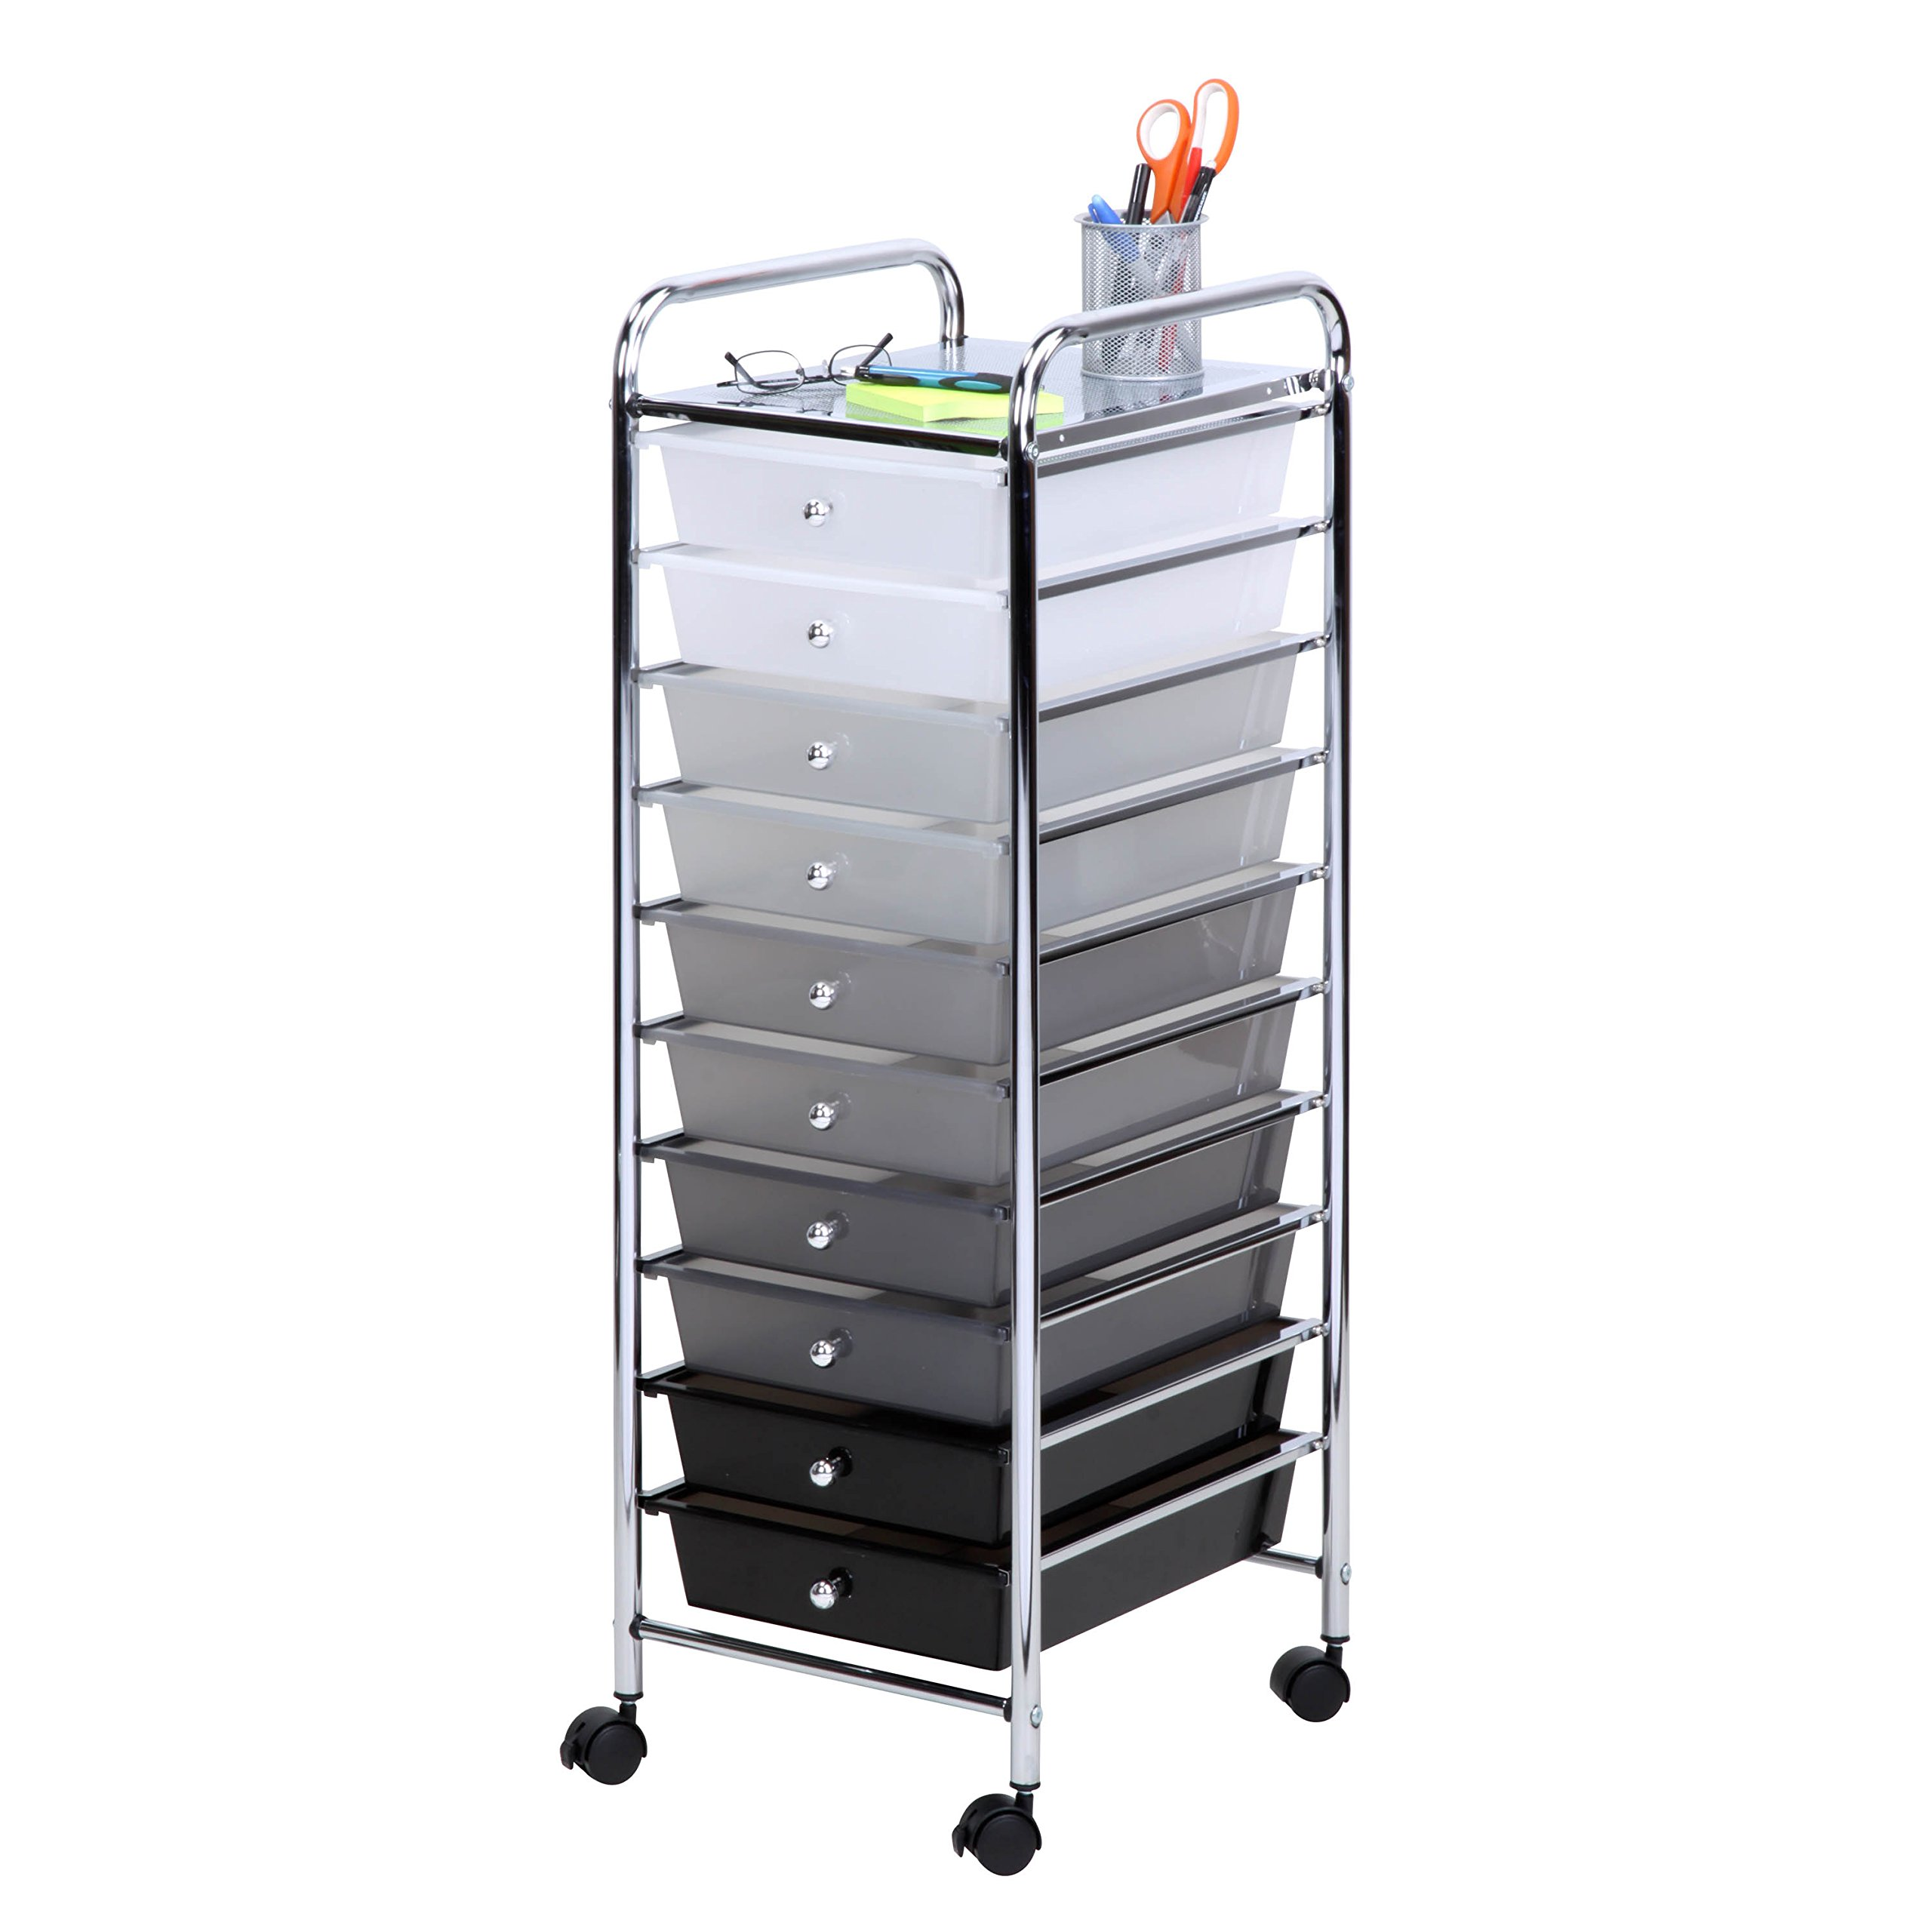 Honey-Can-Do CRT-05255 10 Drawer Shaded Storage cart, 37.8 in L x 15.94 in W x 6.5 in H (96 cm L x 40.5 cm W x 16.5 cm H), Multicolor/Gray/Black/White